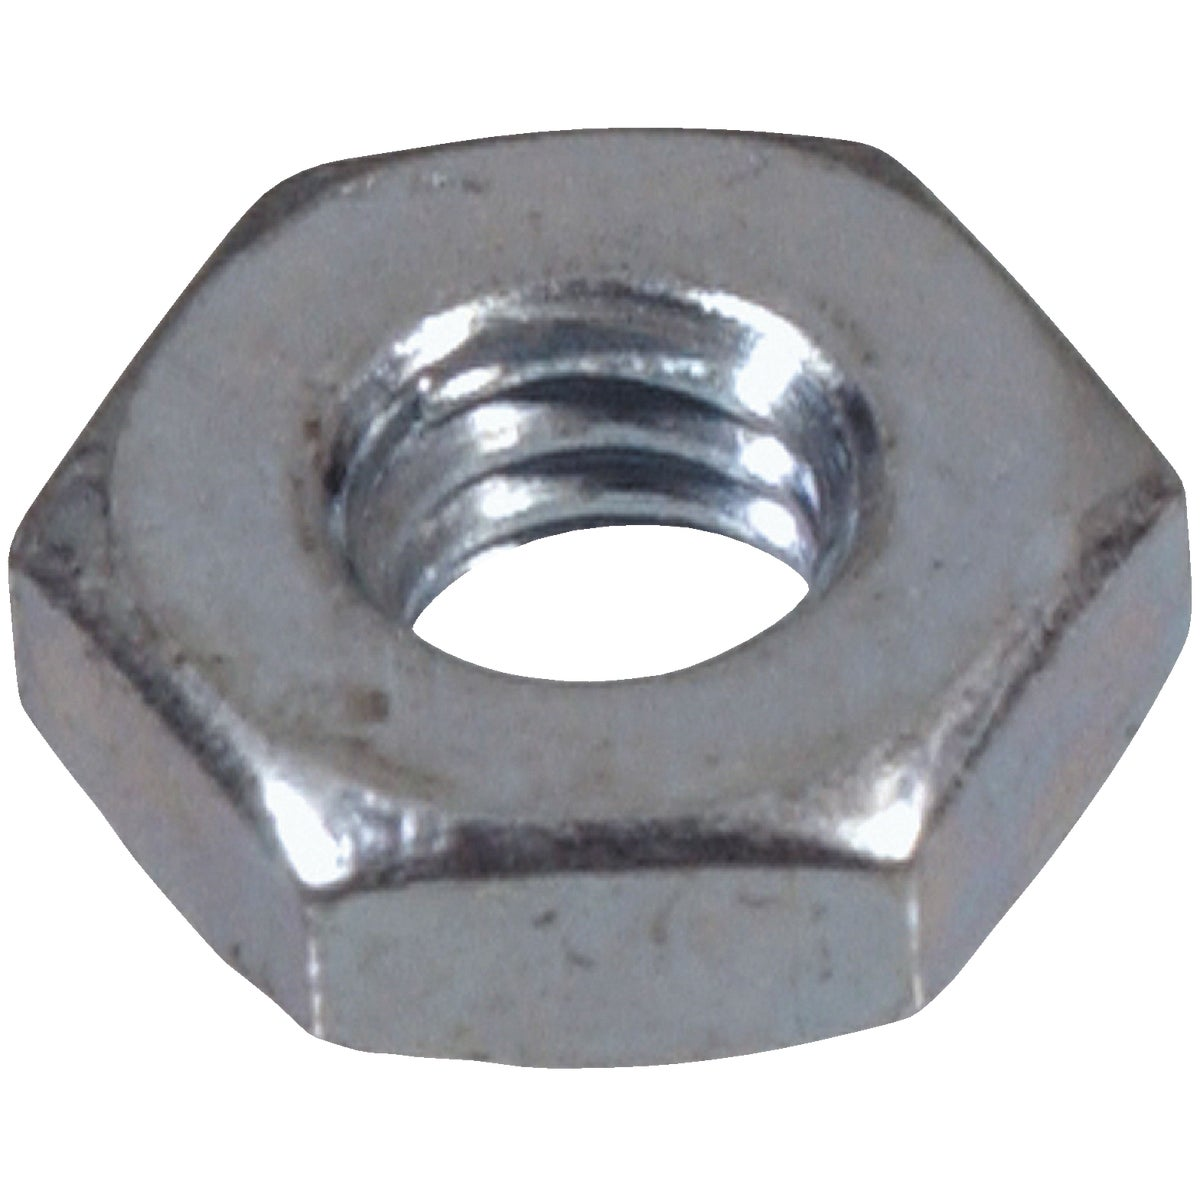 6-32 HEX MACH SCREW NUT